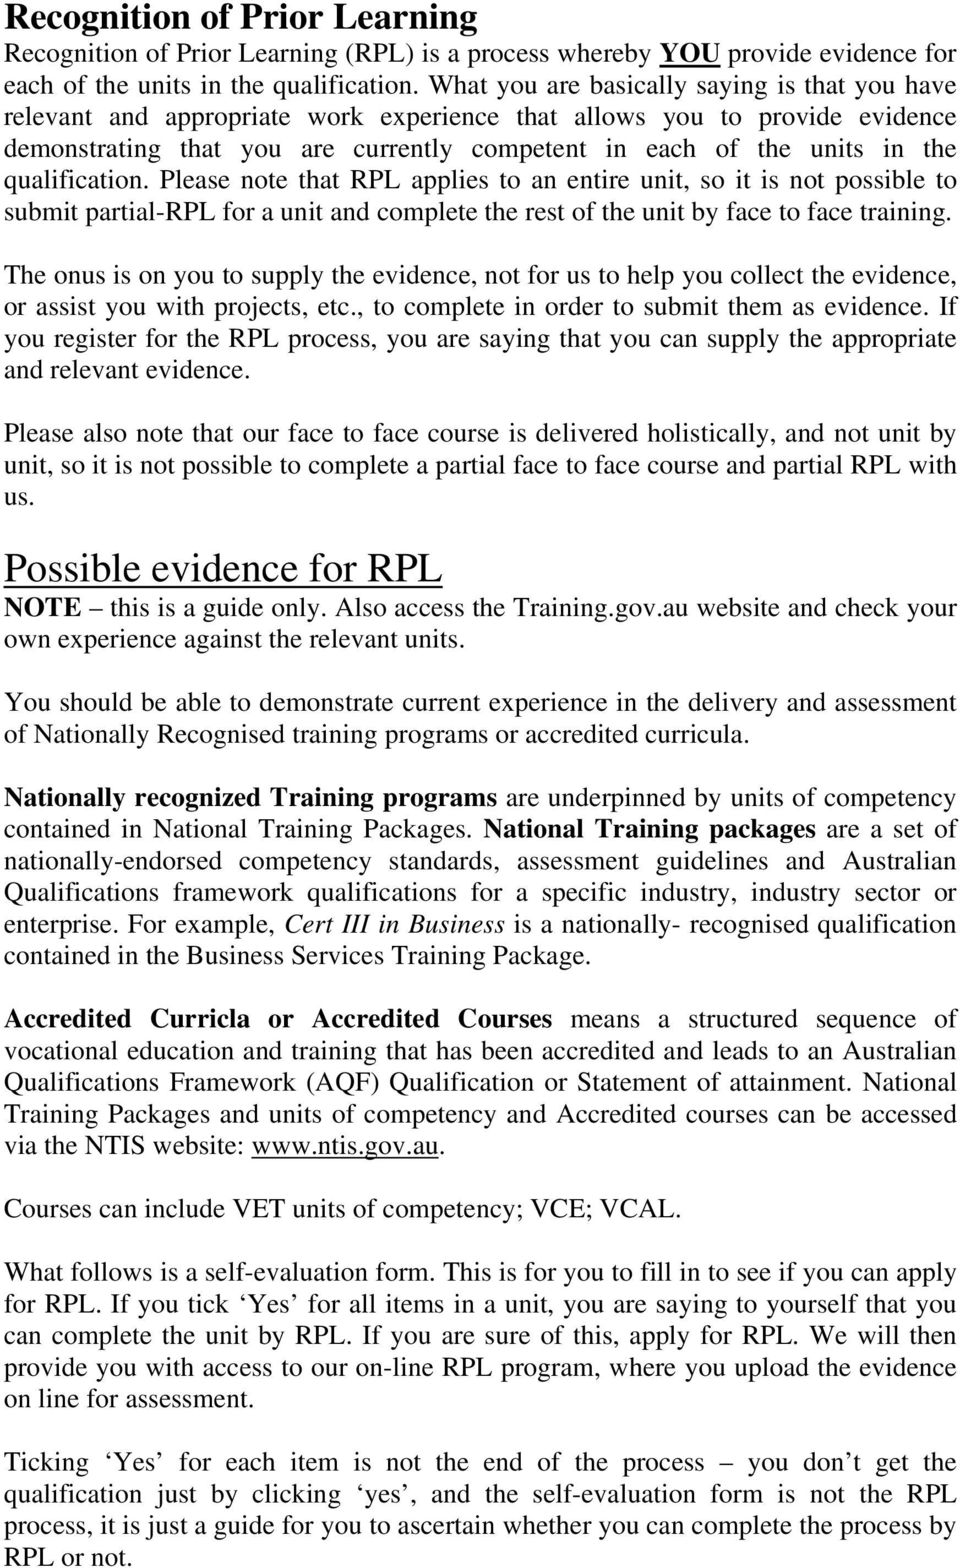 qualification. Please note that RPL applies to an entire unit, so it is not possible to submit partial-rpl for a unit and complete the rest of the unit by face to face training.